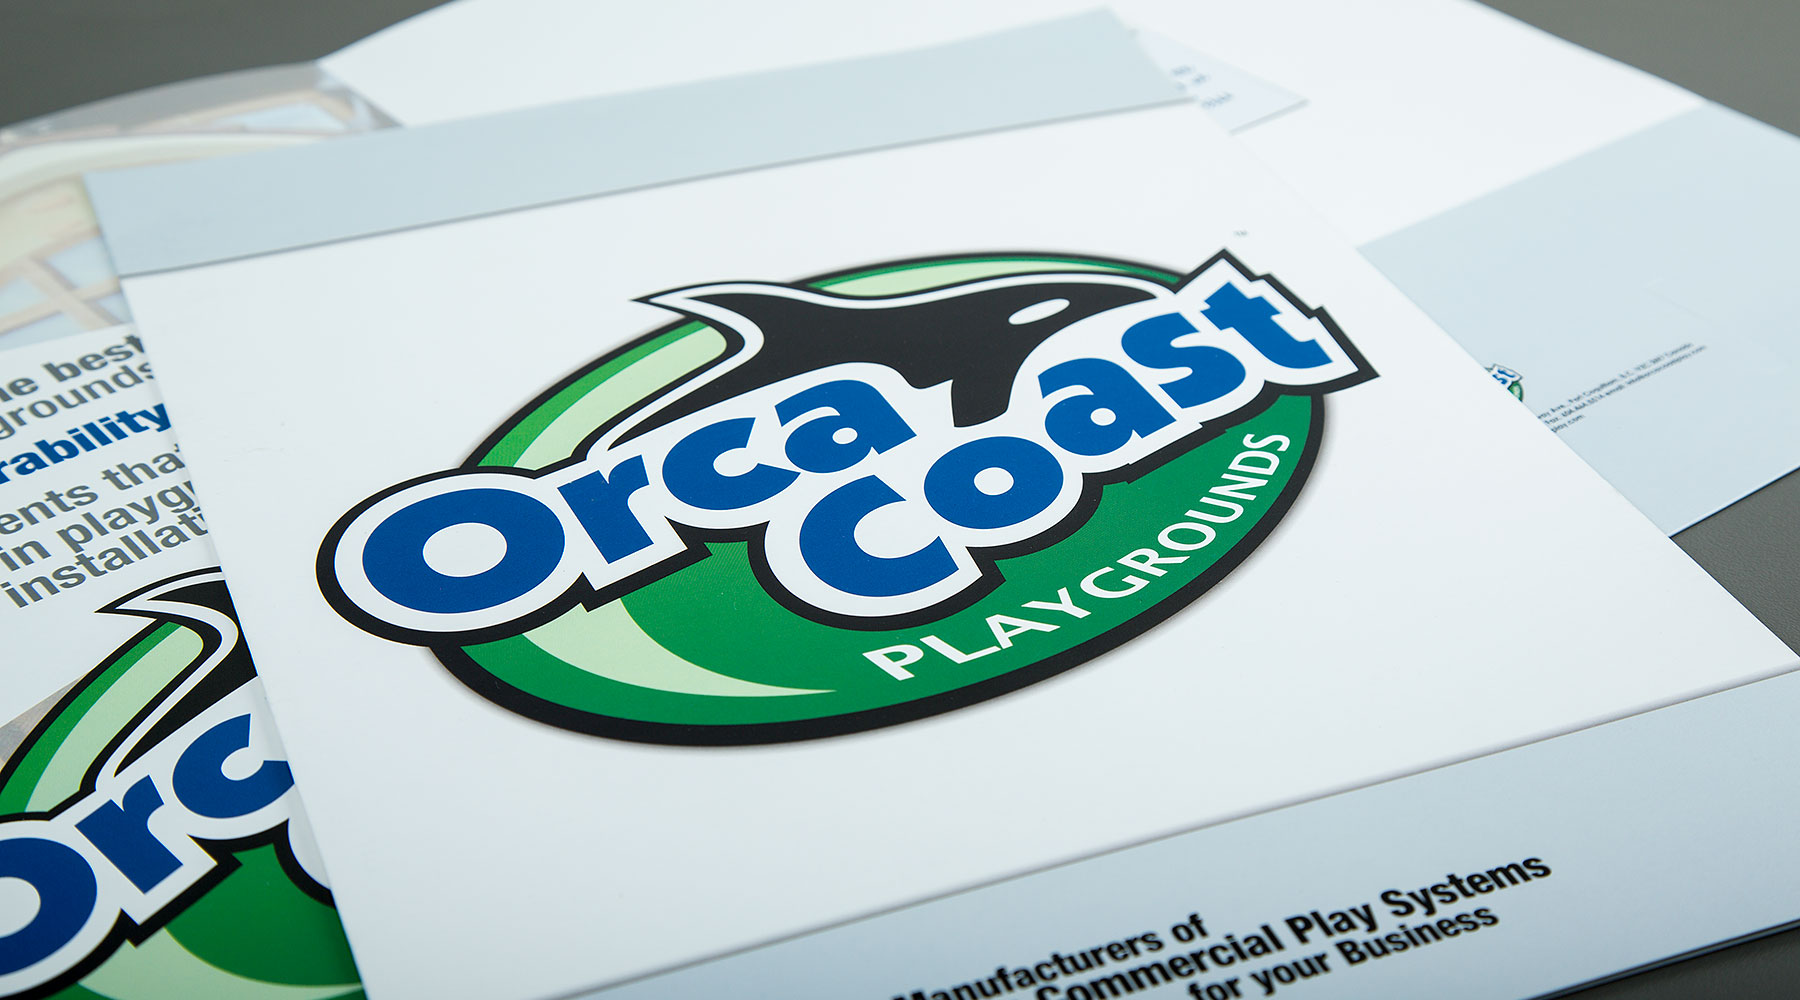 Orca Coast Playgrounds presentation folder